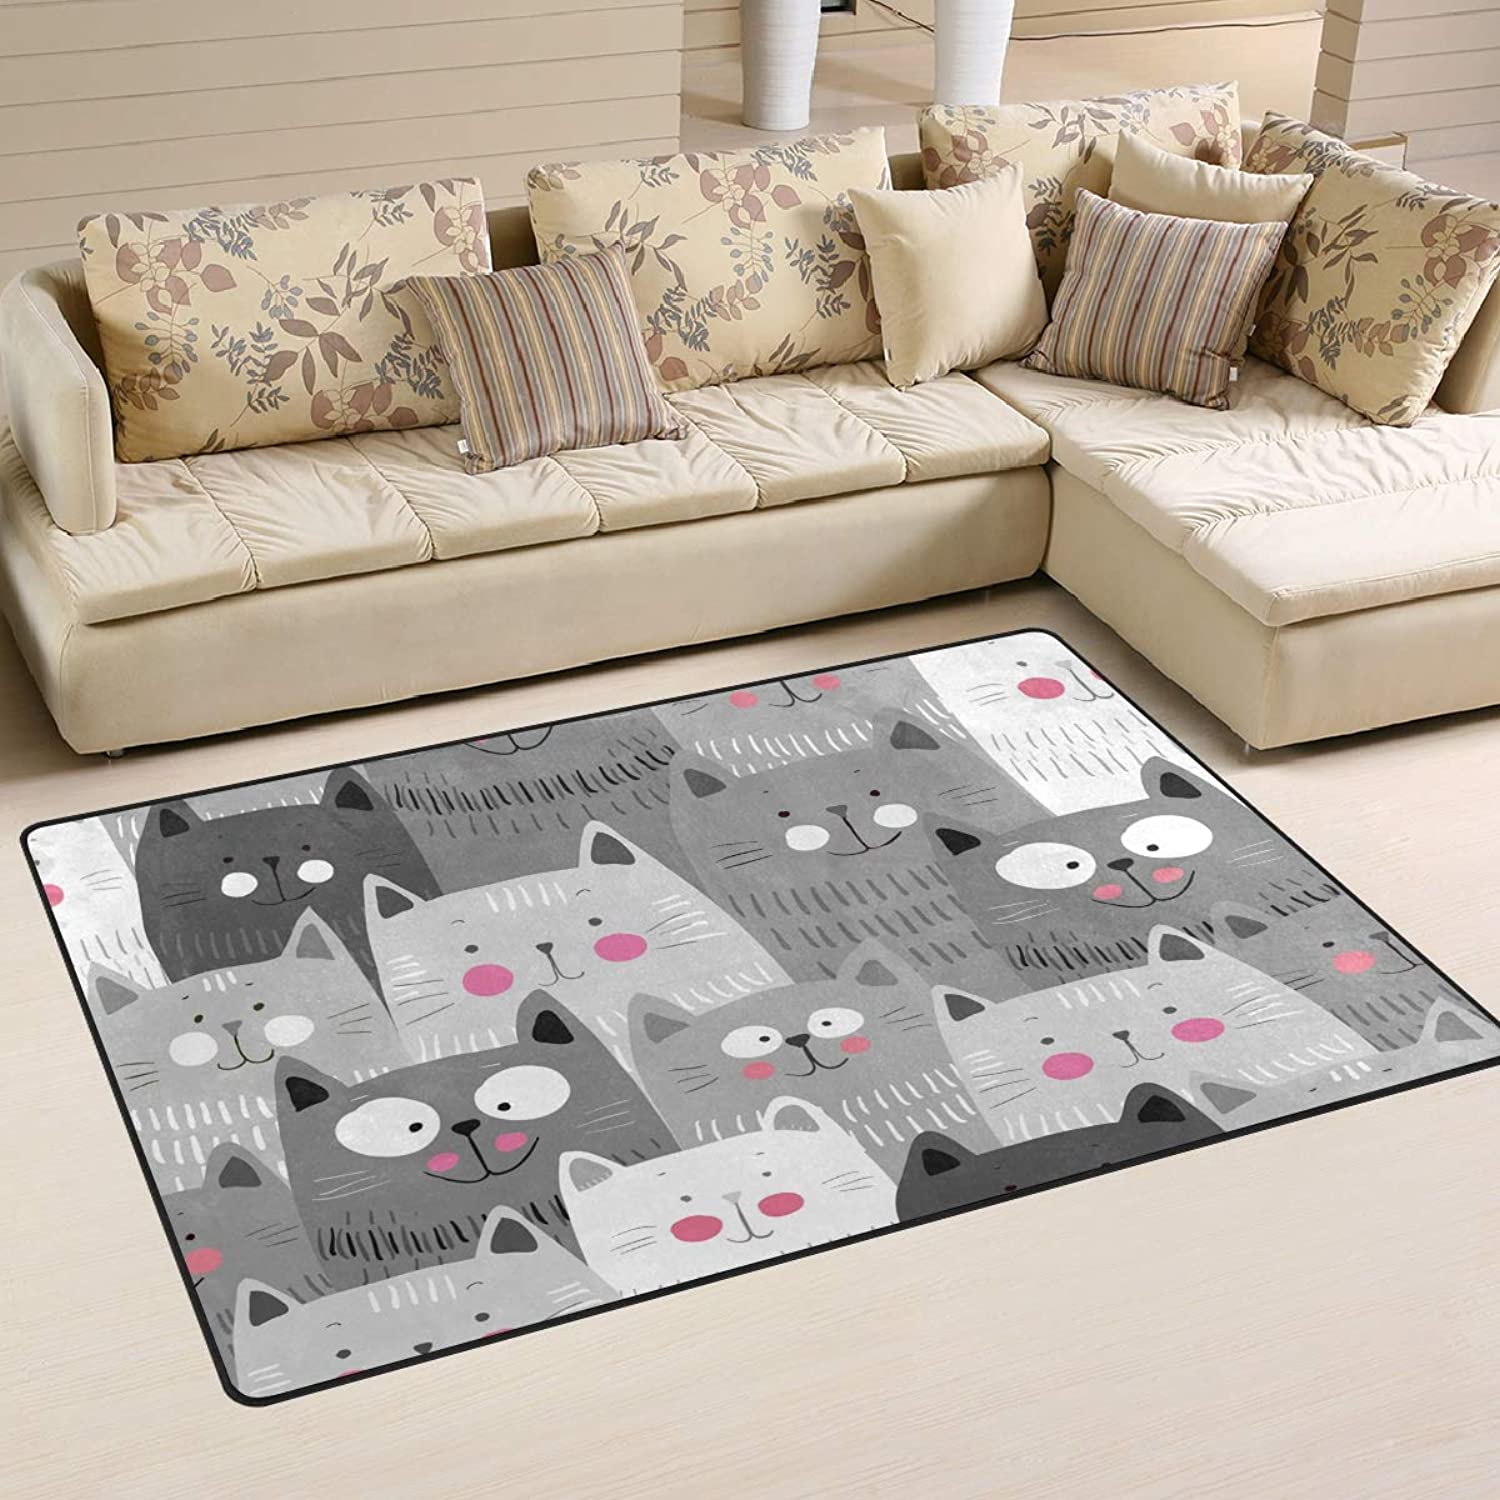 Area Rugs Doormats Cute Cats colorful 5'x3'3 (60x39 Inches) Non-Slip Floor Mat Soft Carpet for Living Dining Bedroom Home